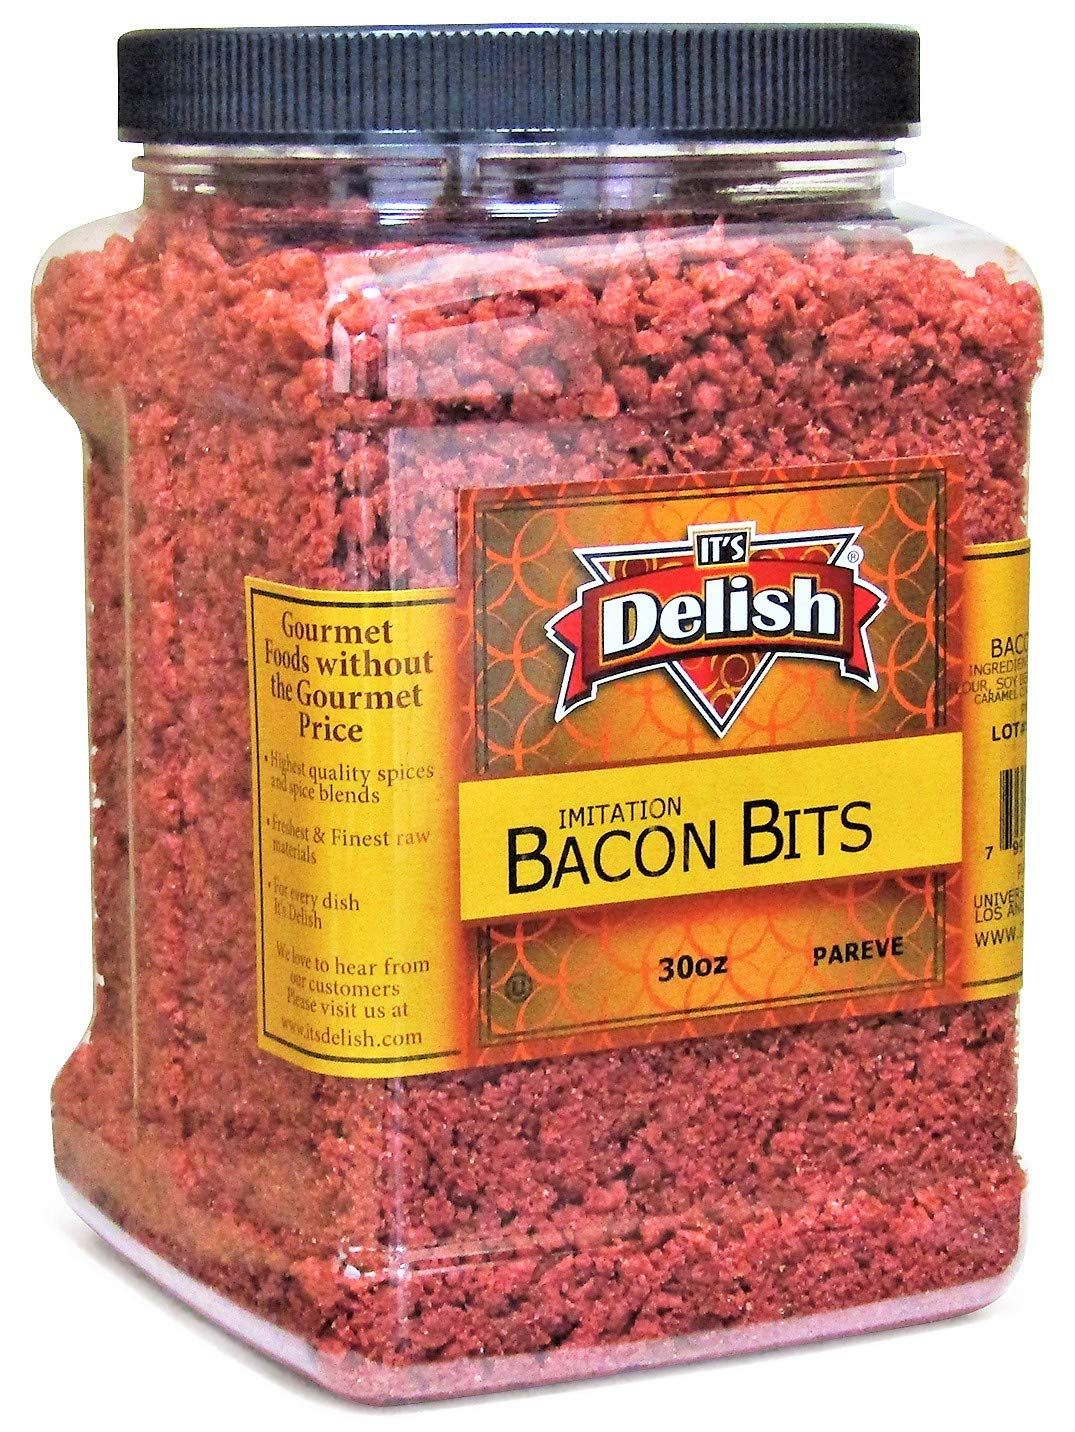 Imitation Bacon Bits by Its Delish, 30 Oz Jumbo Reusable Container | Kosher Parve Vegan for Salad Topping, Eggs, Baked Potatoes with Smoky Flavor and Crunch